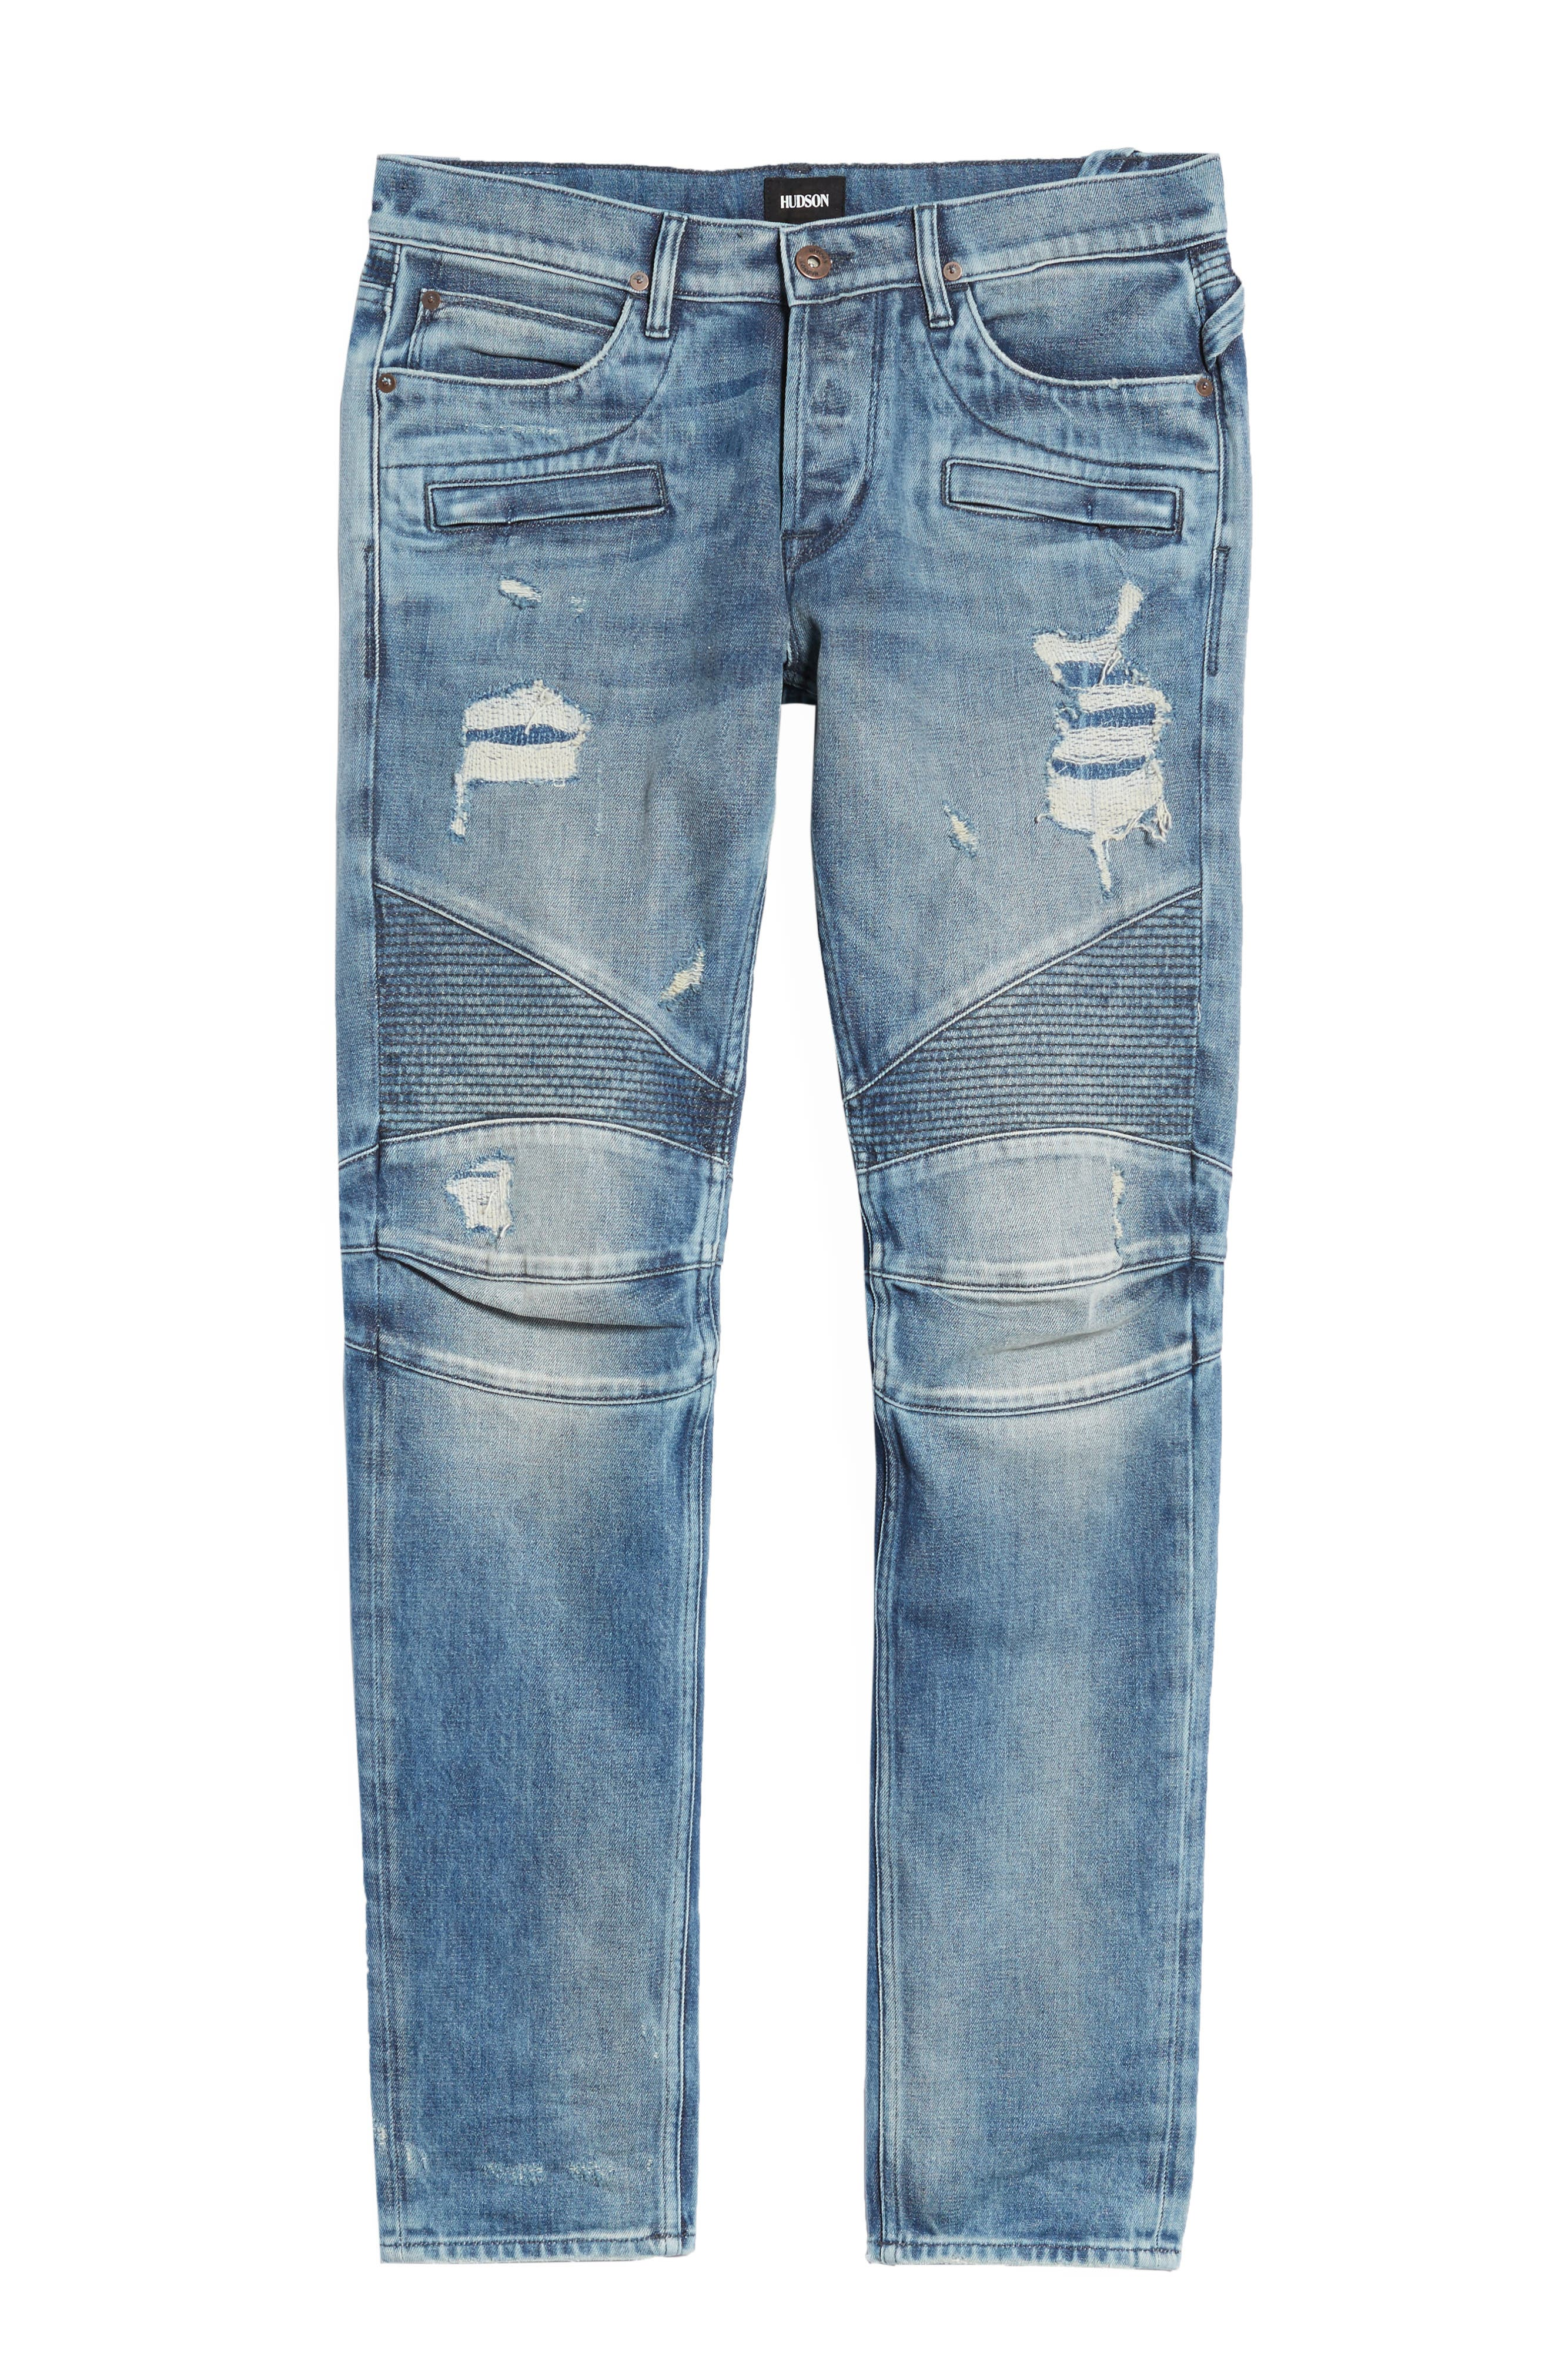 Blinder Biker Skinny Fit Jeans,                             Alternate thumbnail 6, color,                             CHOPPER